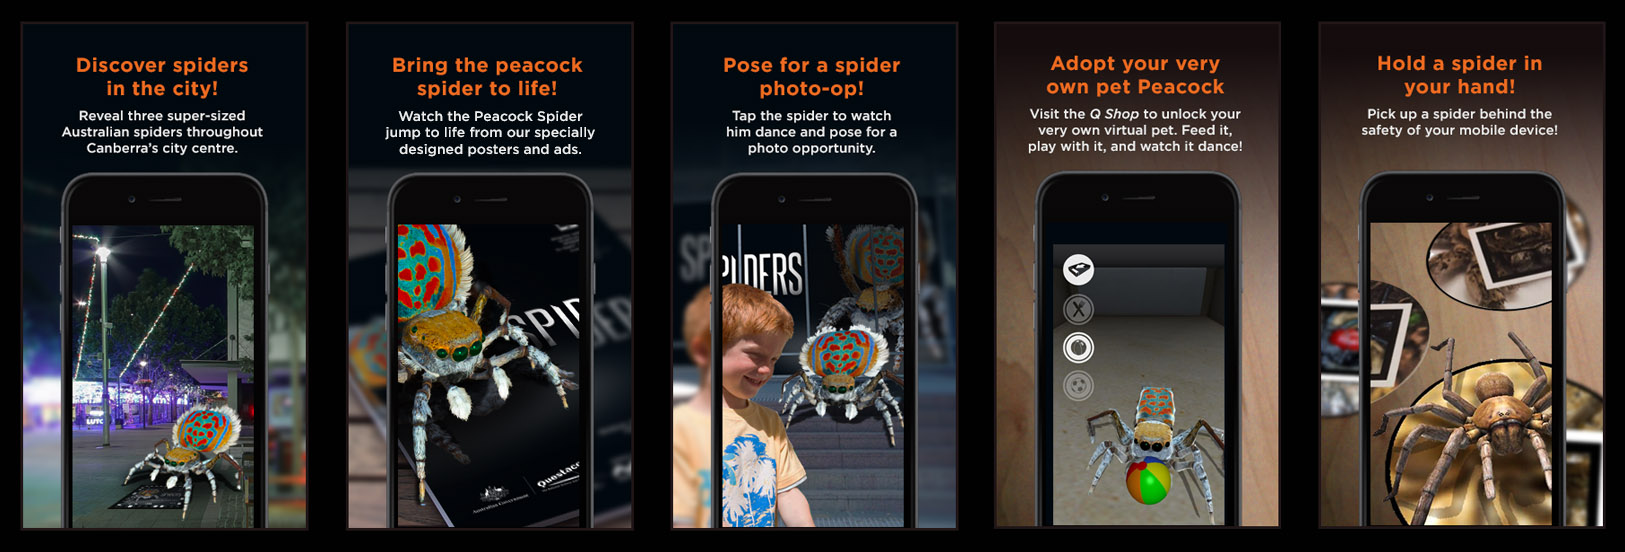 Various screenshots of the spiders app.